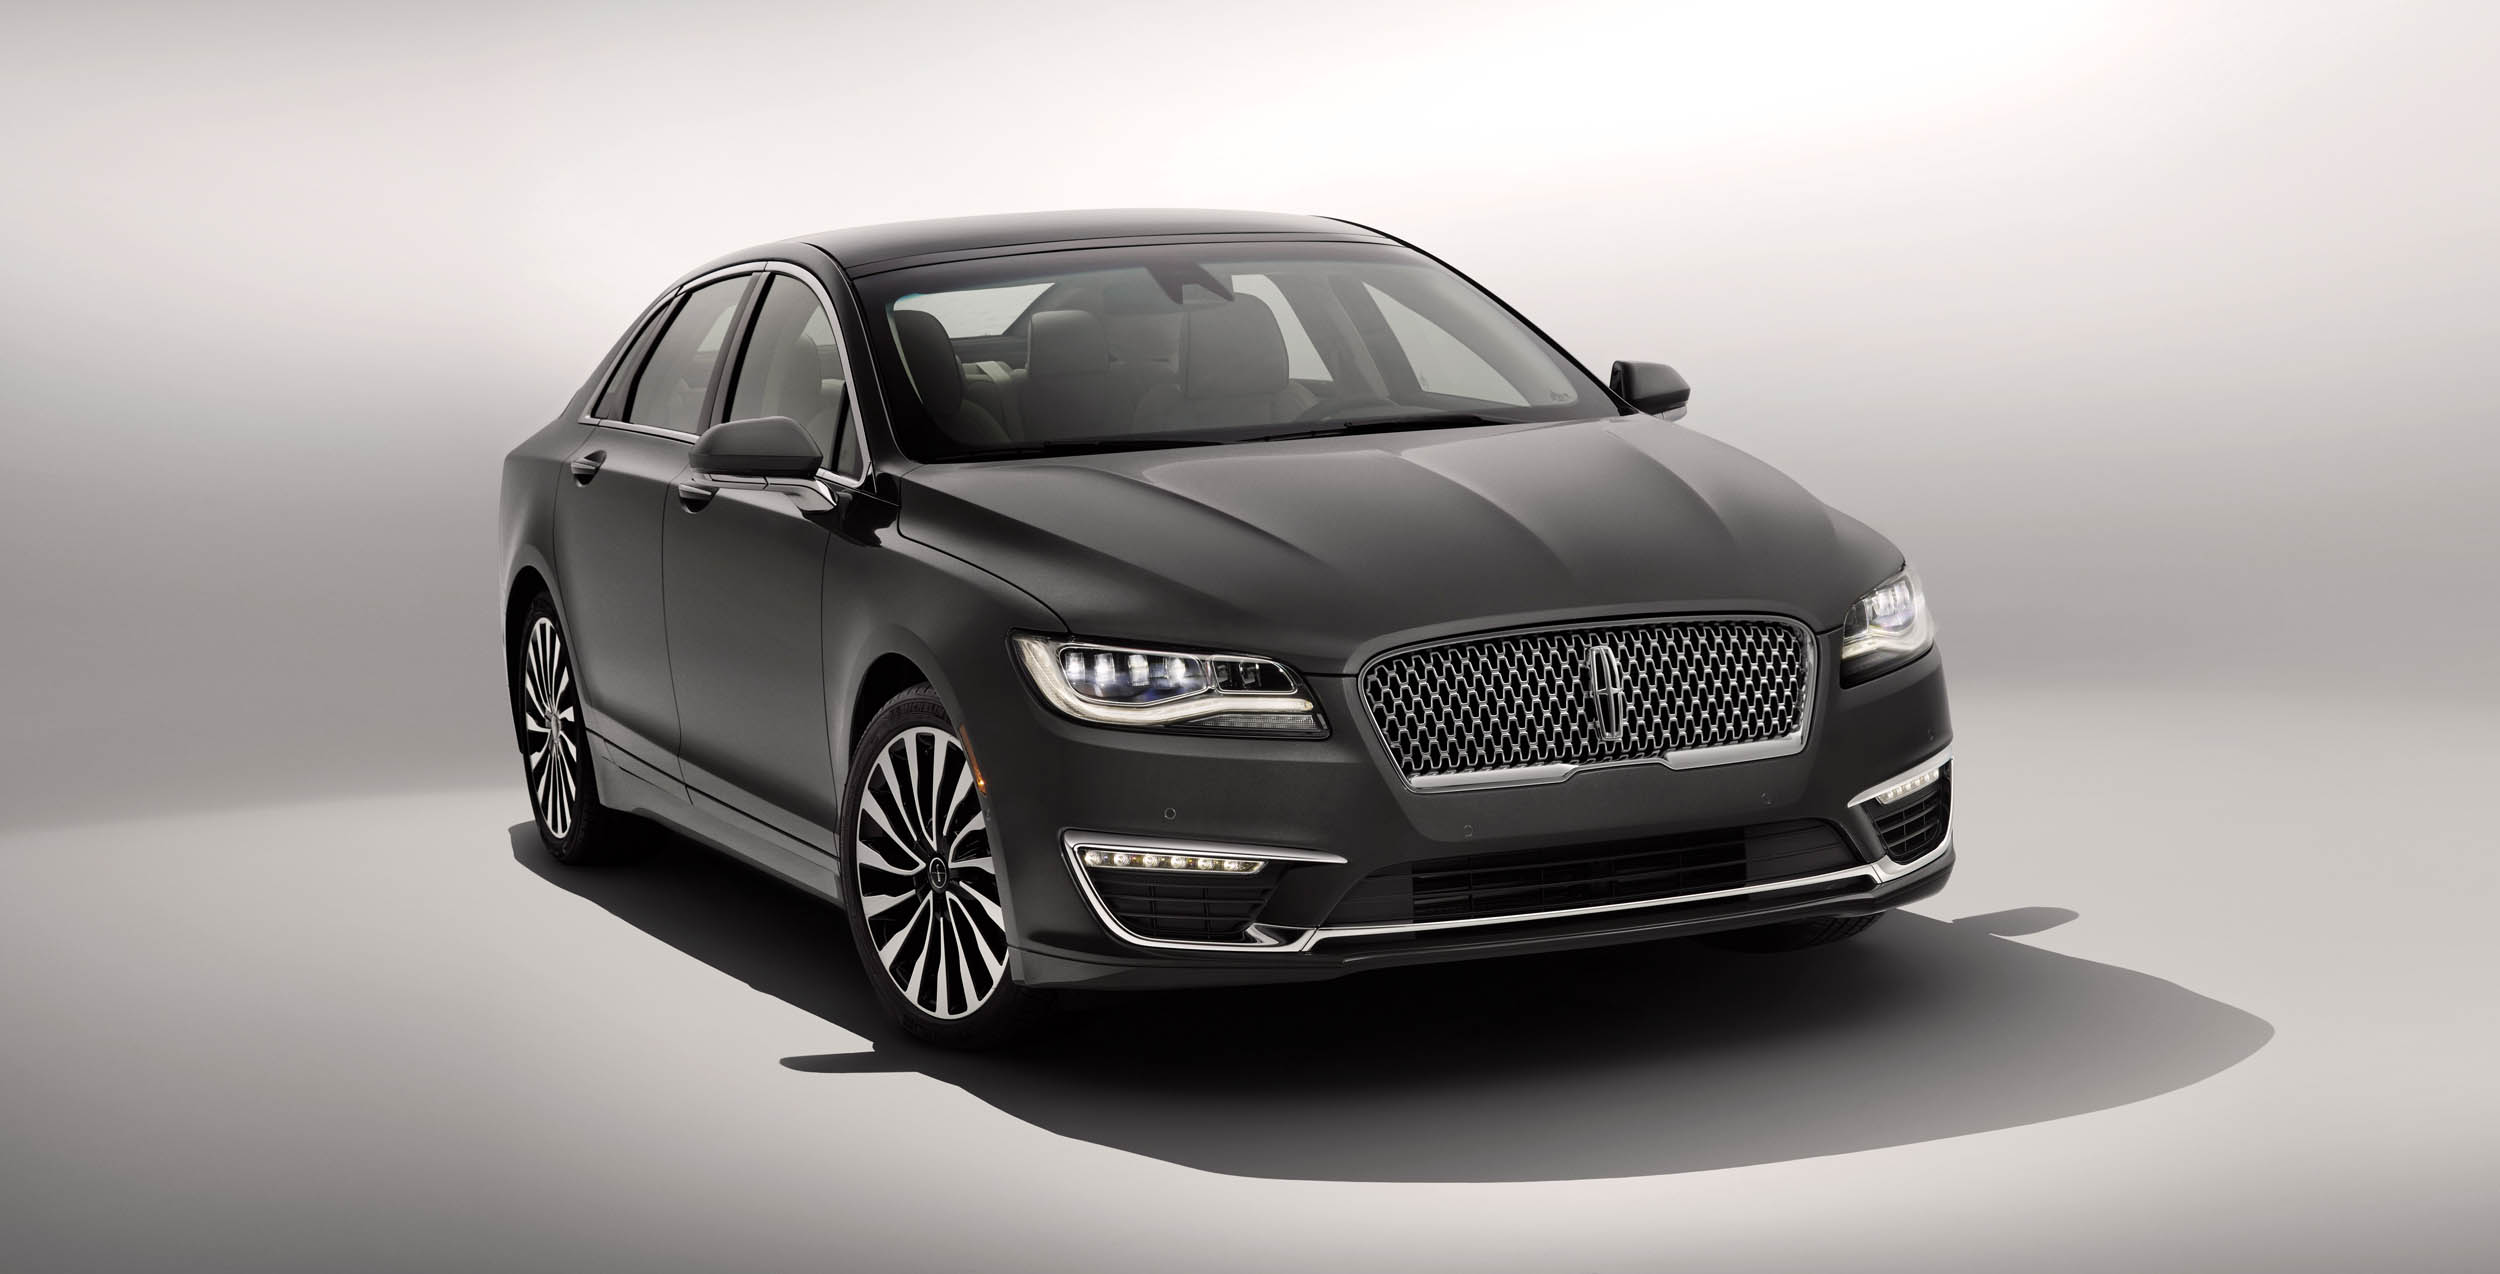 2021 Spy Shots Lincoln Mkz Sedan Speed Test